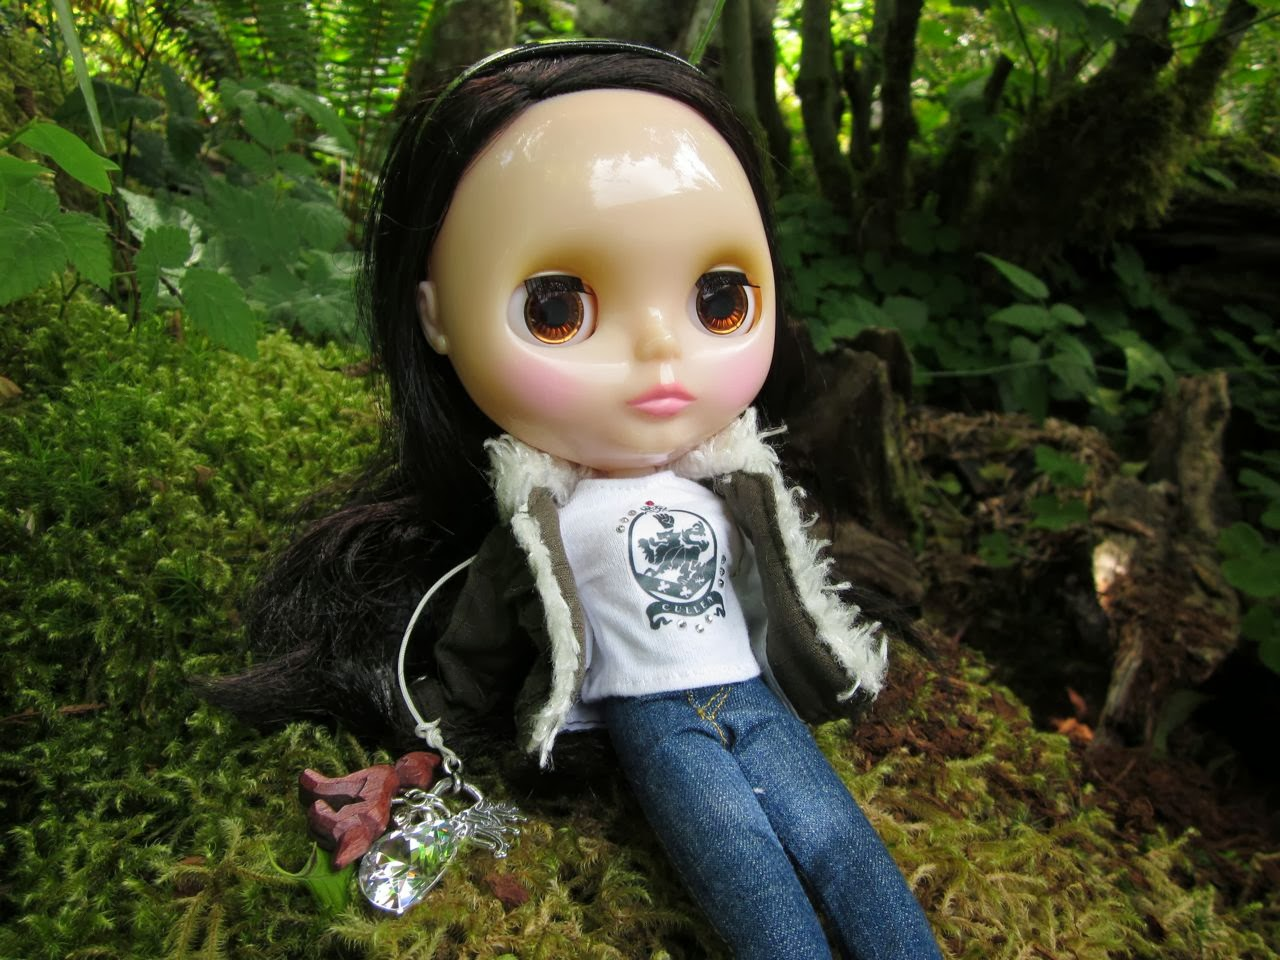 Caradoll on Flickr